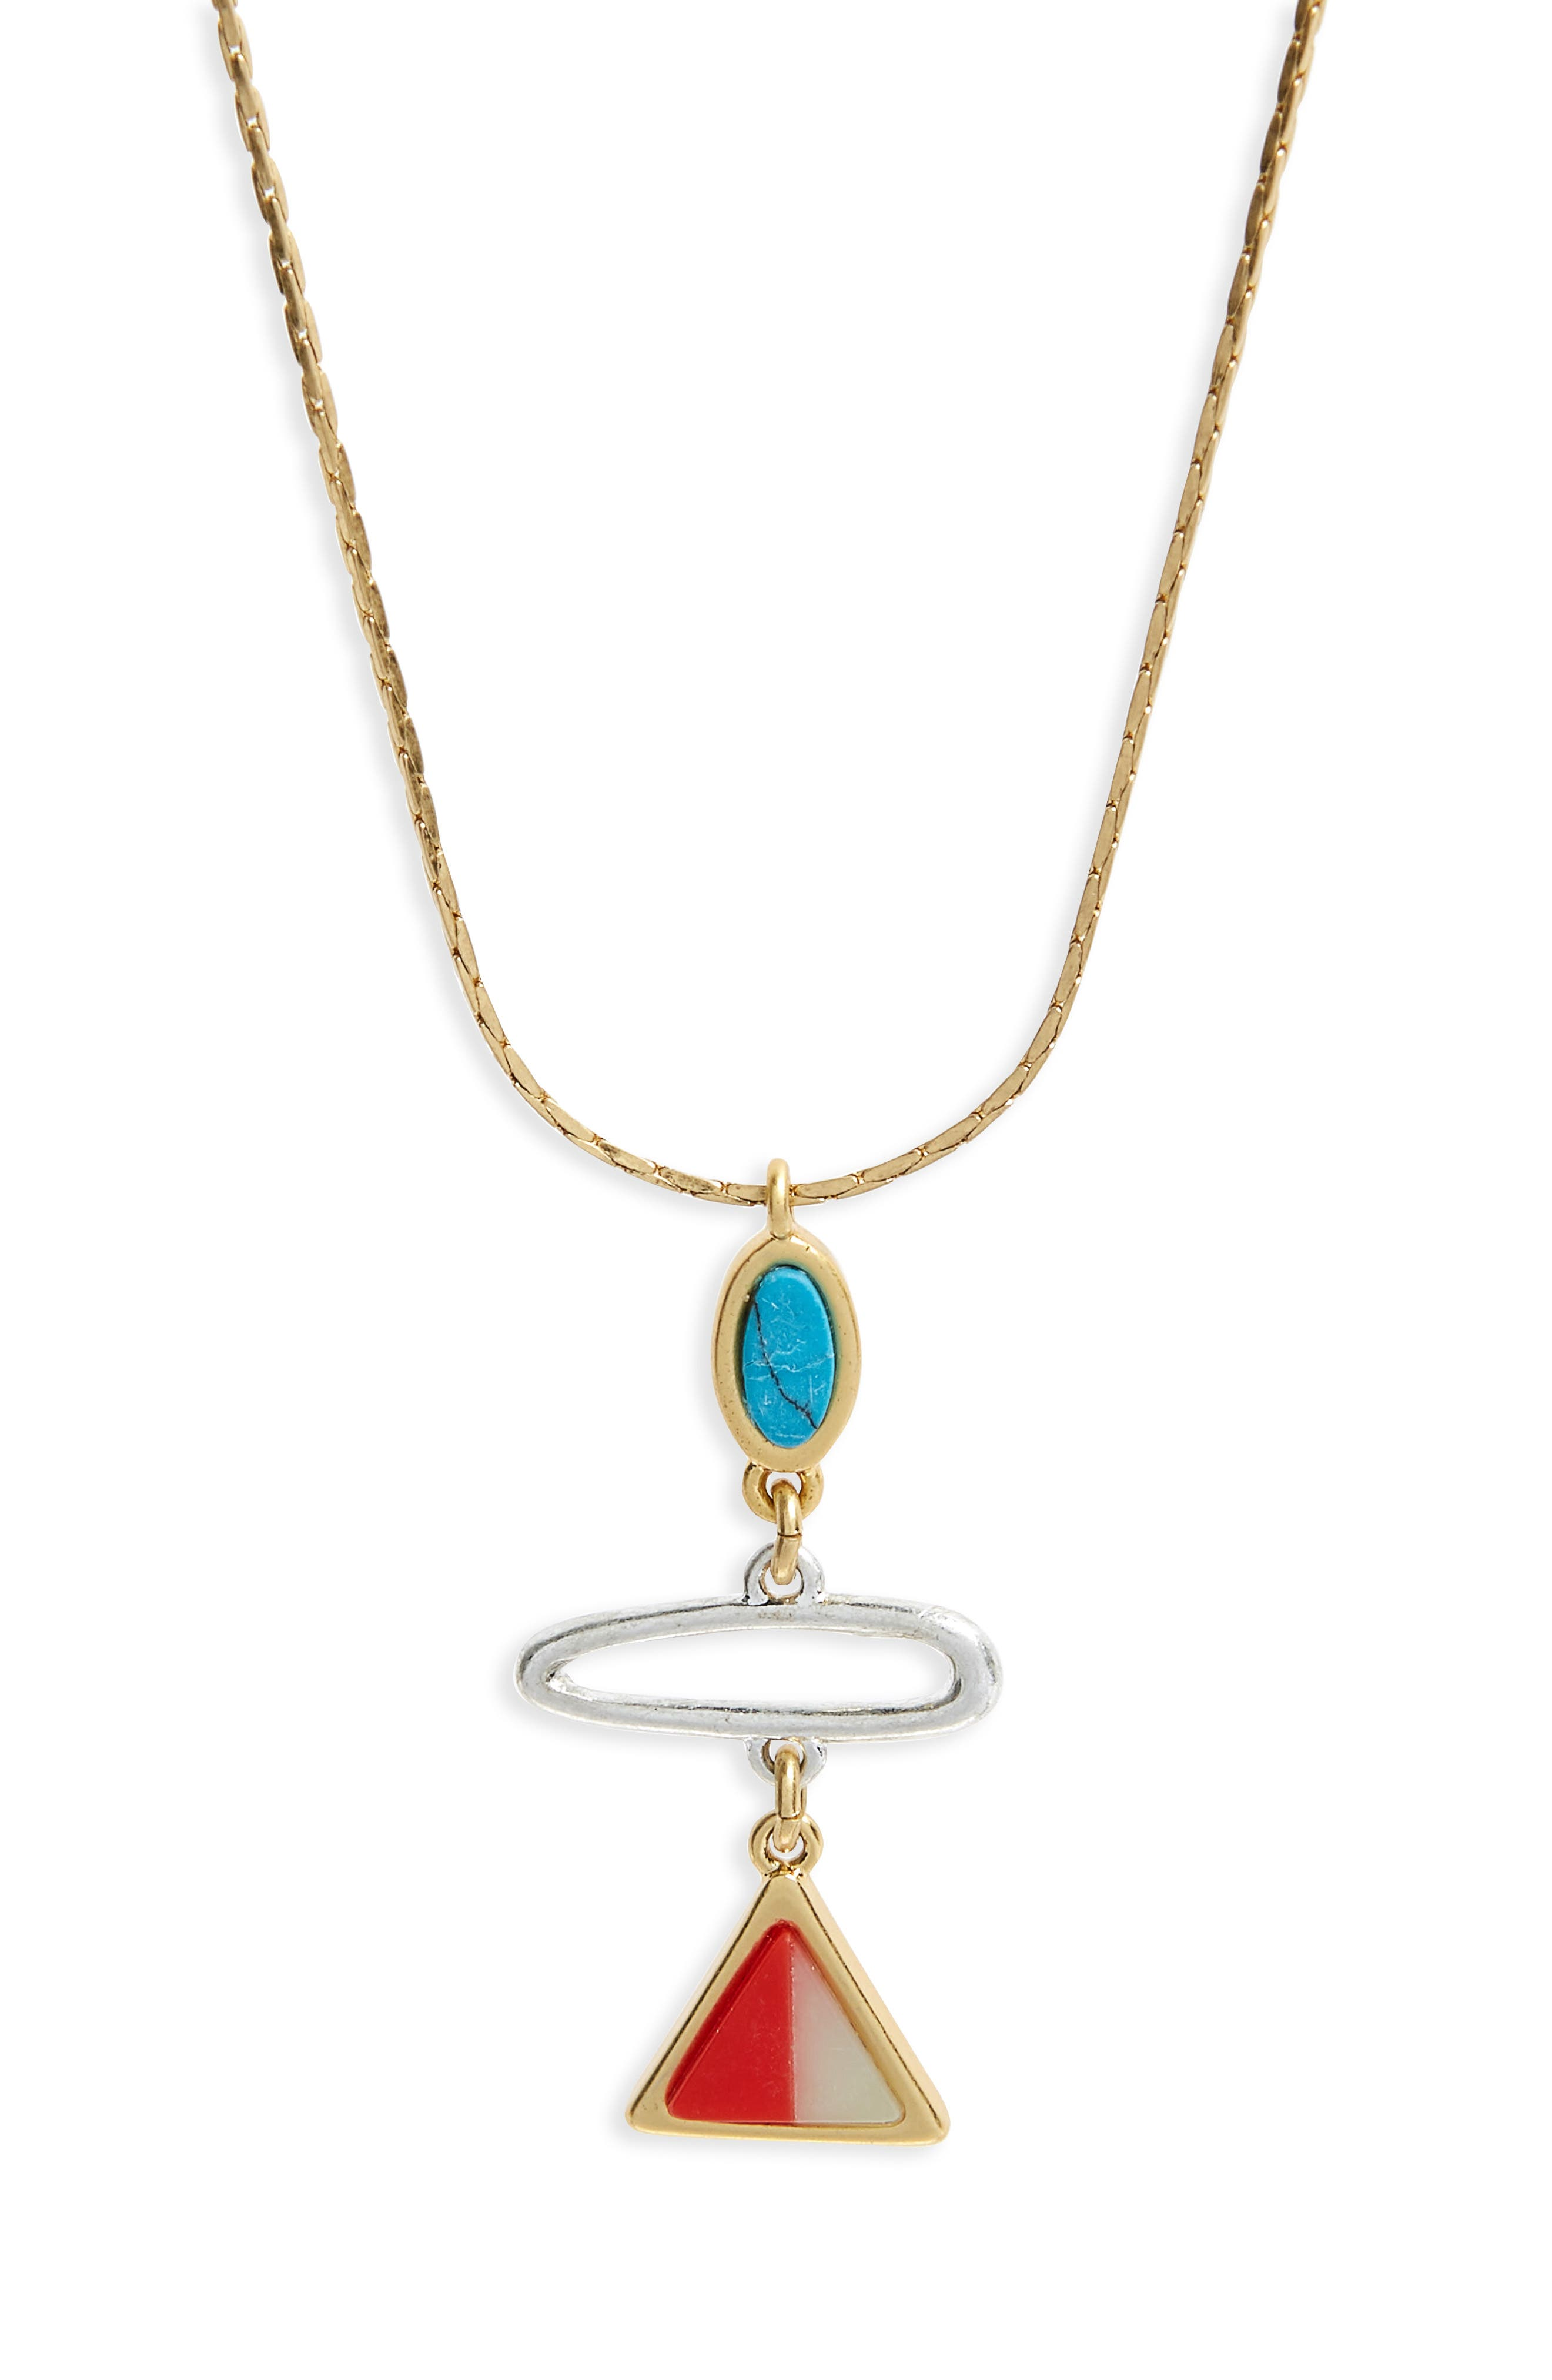 Stone Inlay Pendant Necklace,                             Main thumbnail 1, color,                             Vintage Gold